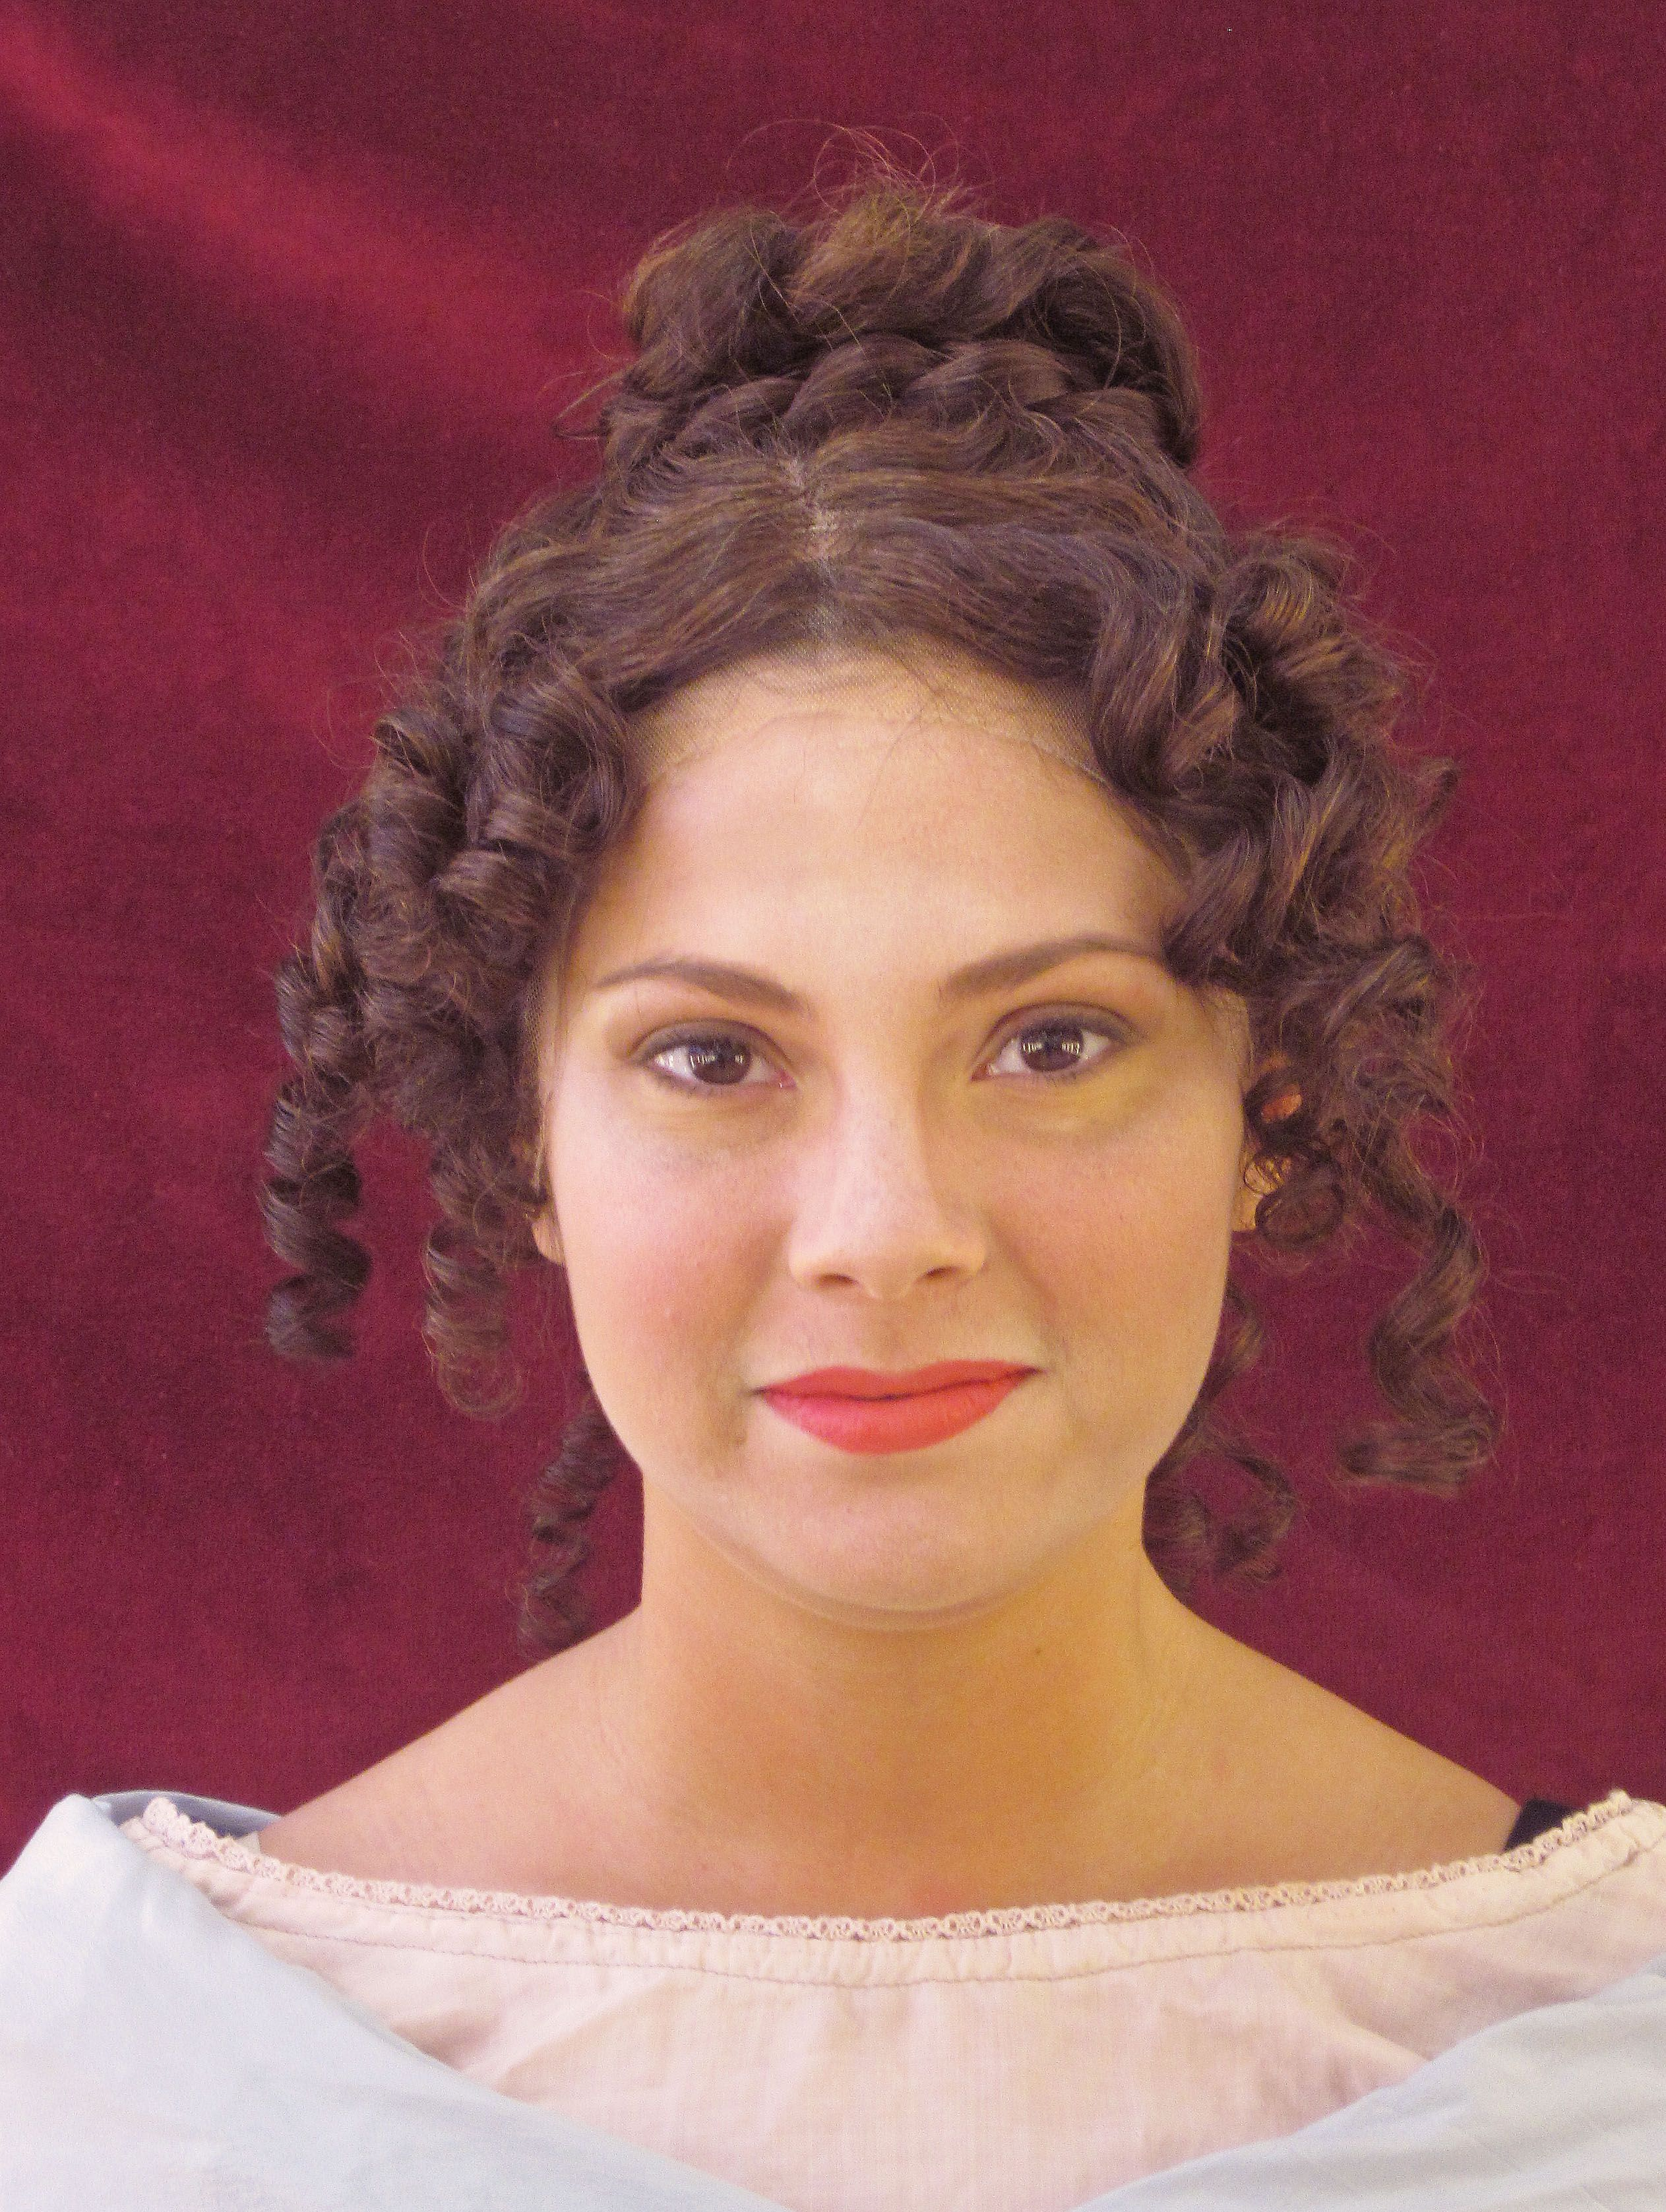 A good example of what hair looked like during the regency period